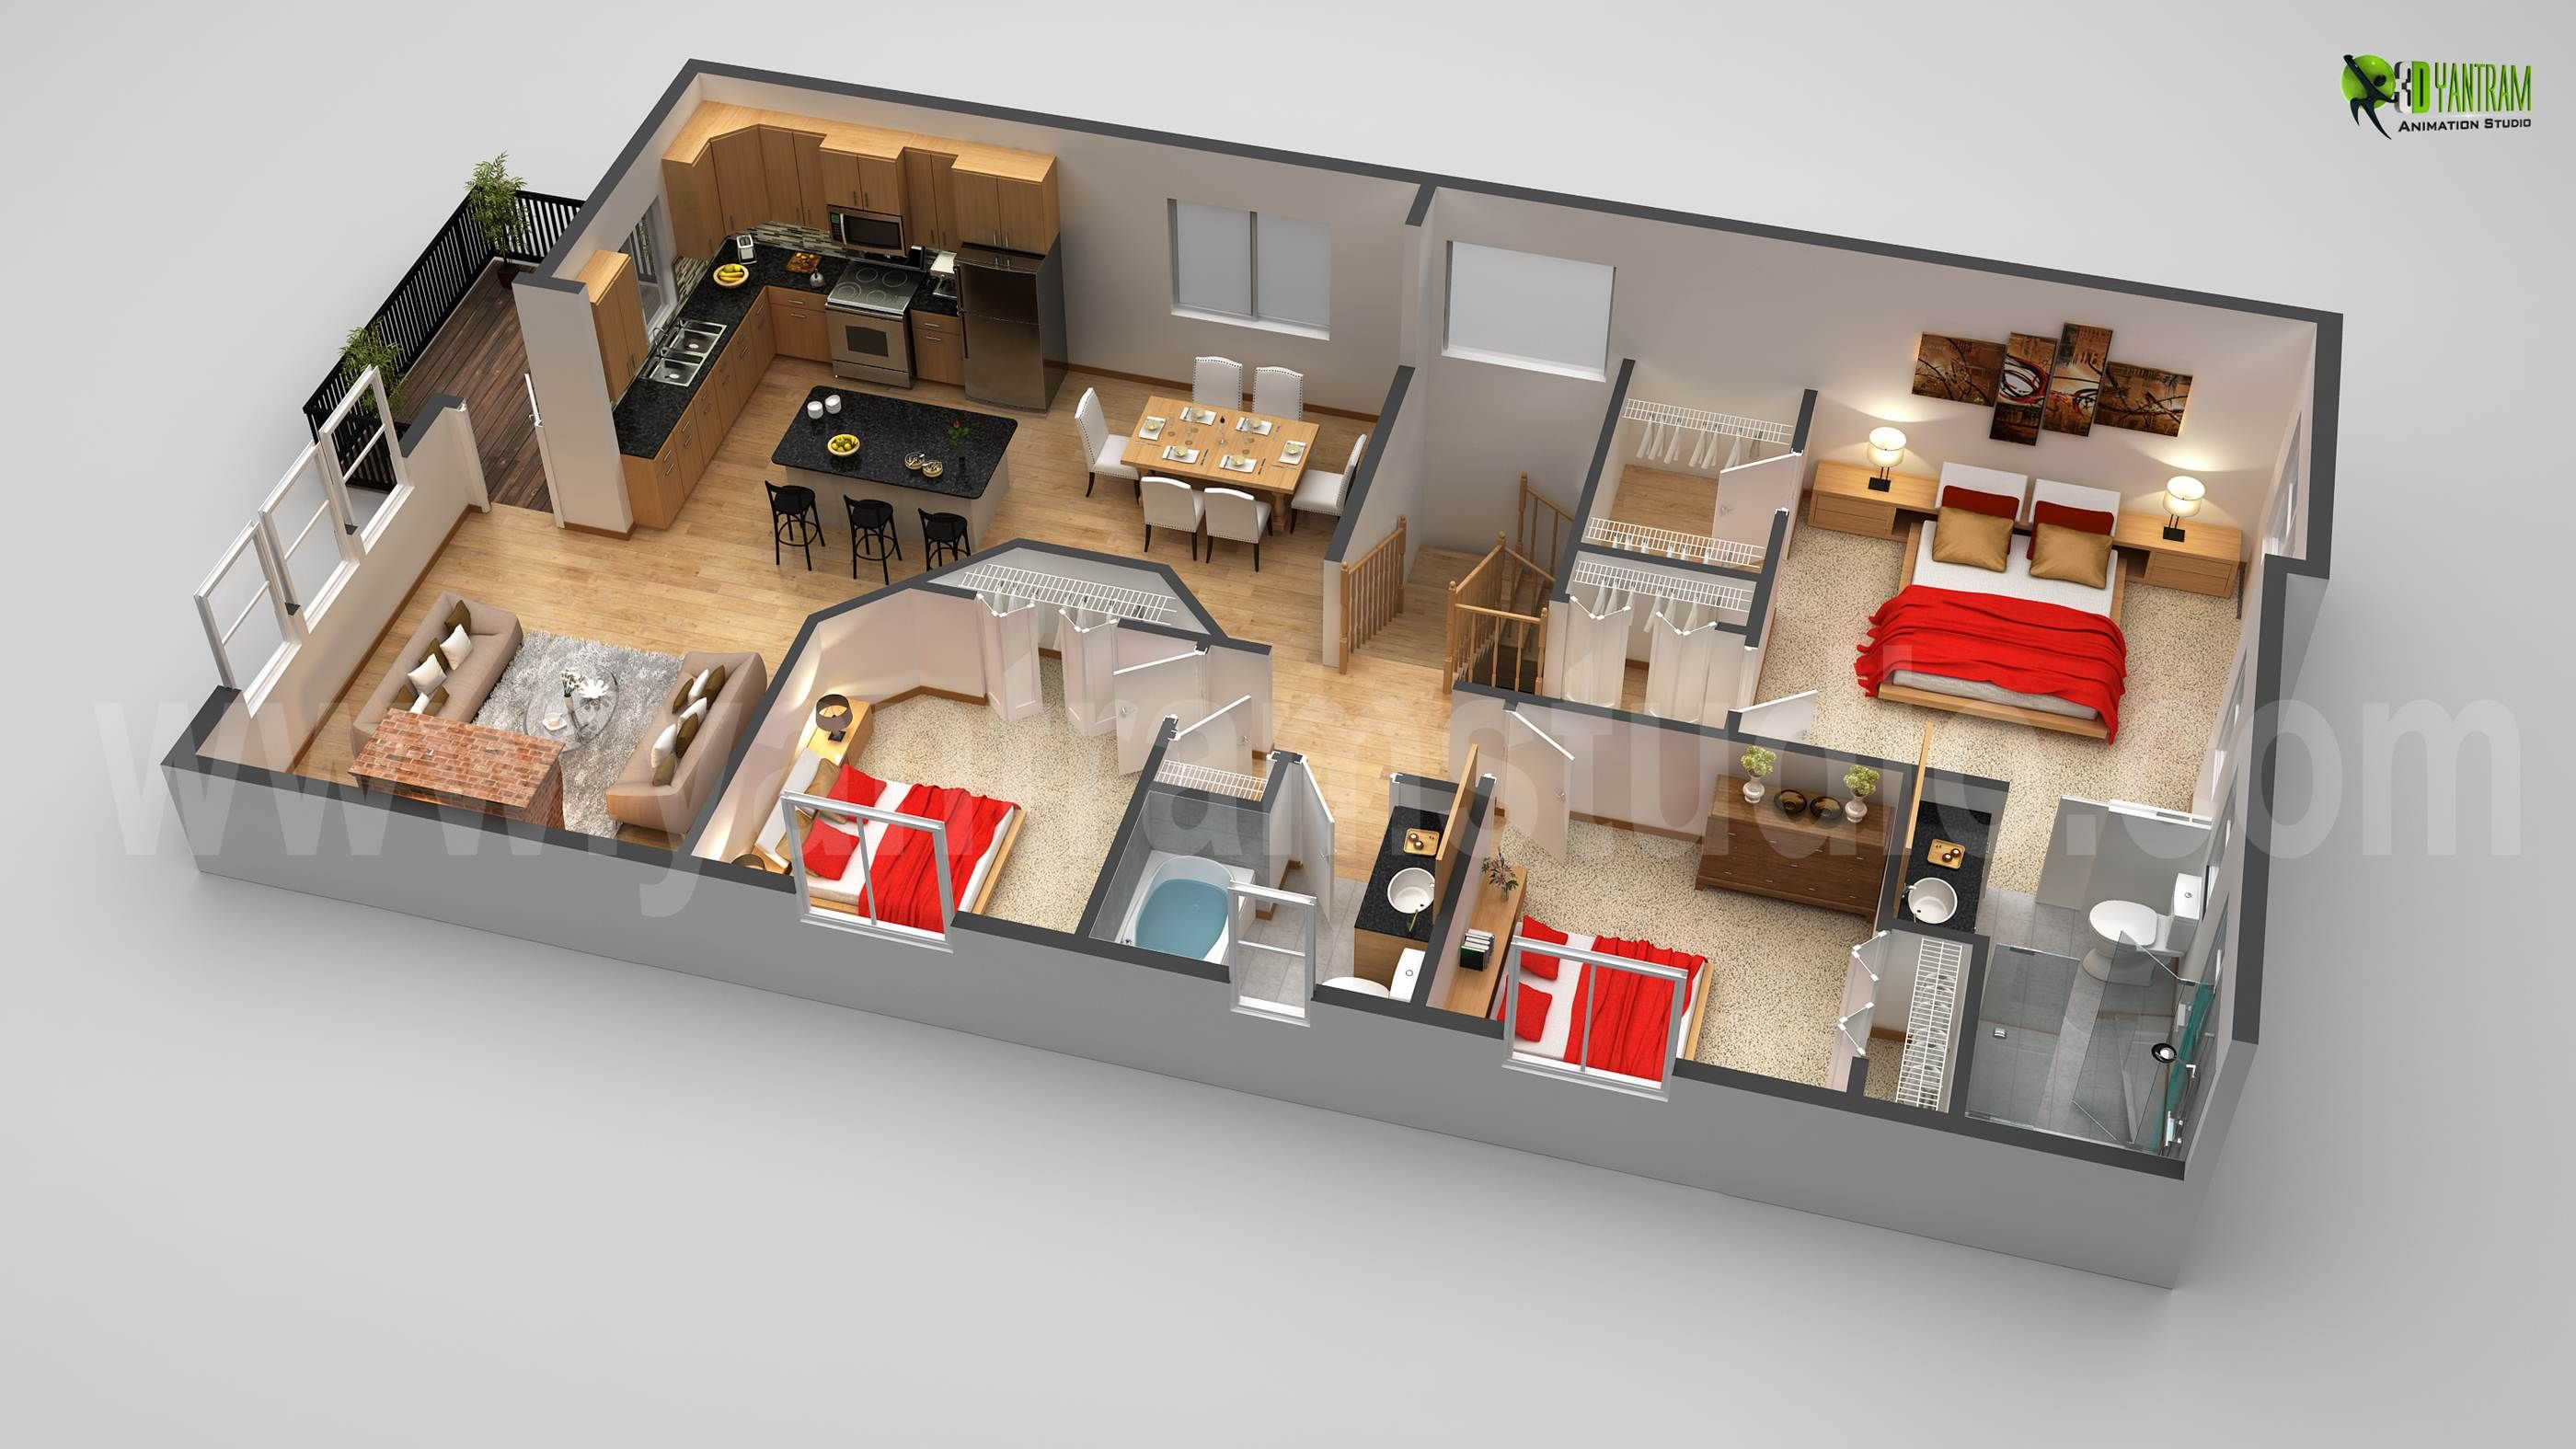 3d First Floor Plan Design Rendering Animation Floorplans House Home Modern Floor Plans House Design House Plans